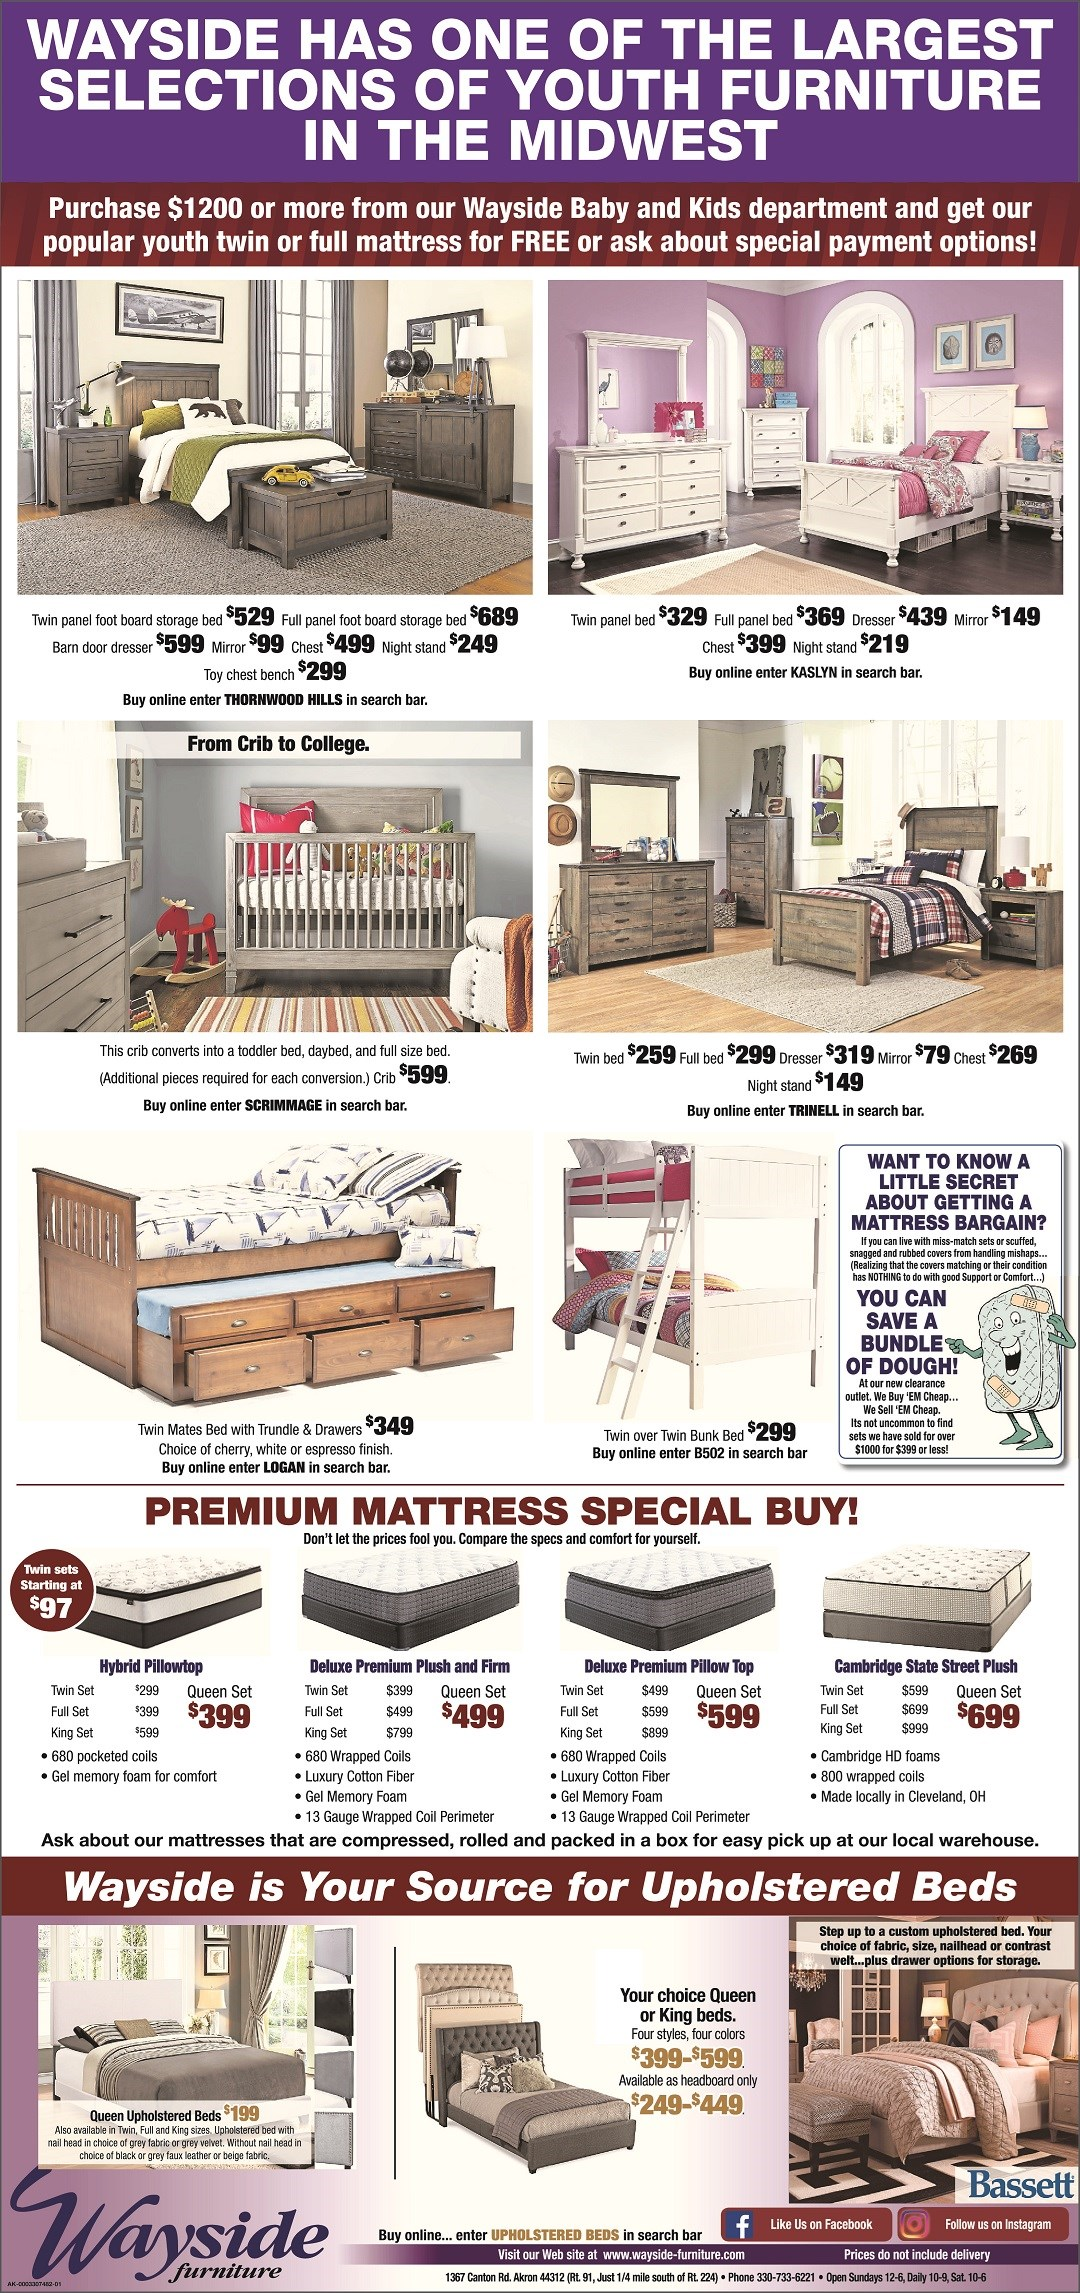 youth bedroom sets, cribs, twin beds, full beds, mates bed with trundle, bunk bed, twin over twin bunk bed, upholstered beds, upholstered headboard, mattresses, twin mattress, full mattress, queen mattress, king mattress